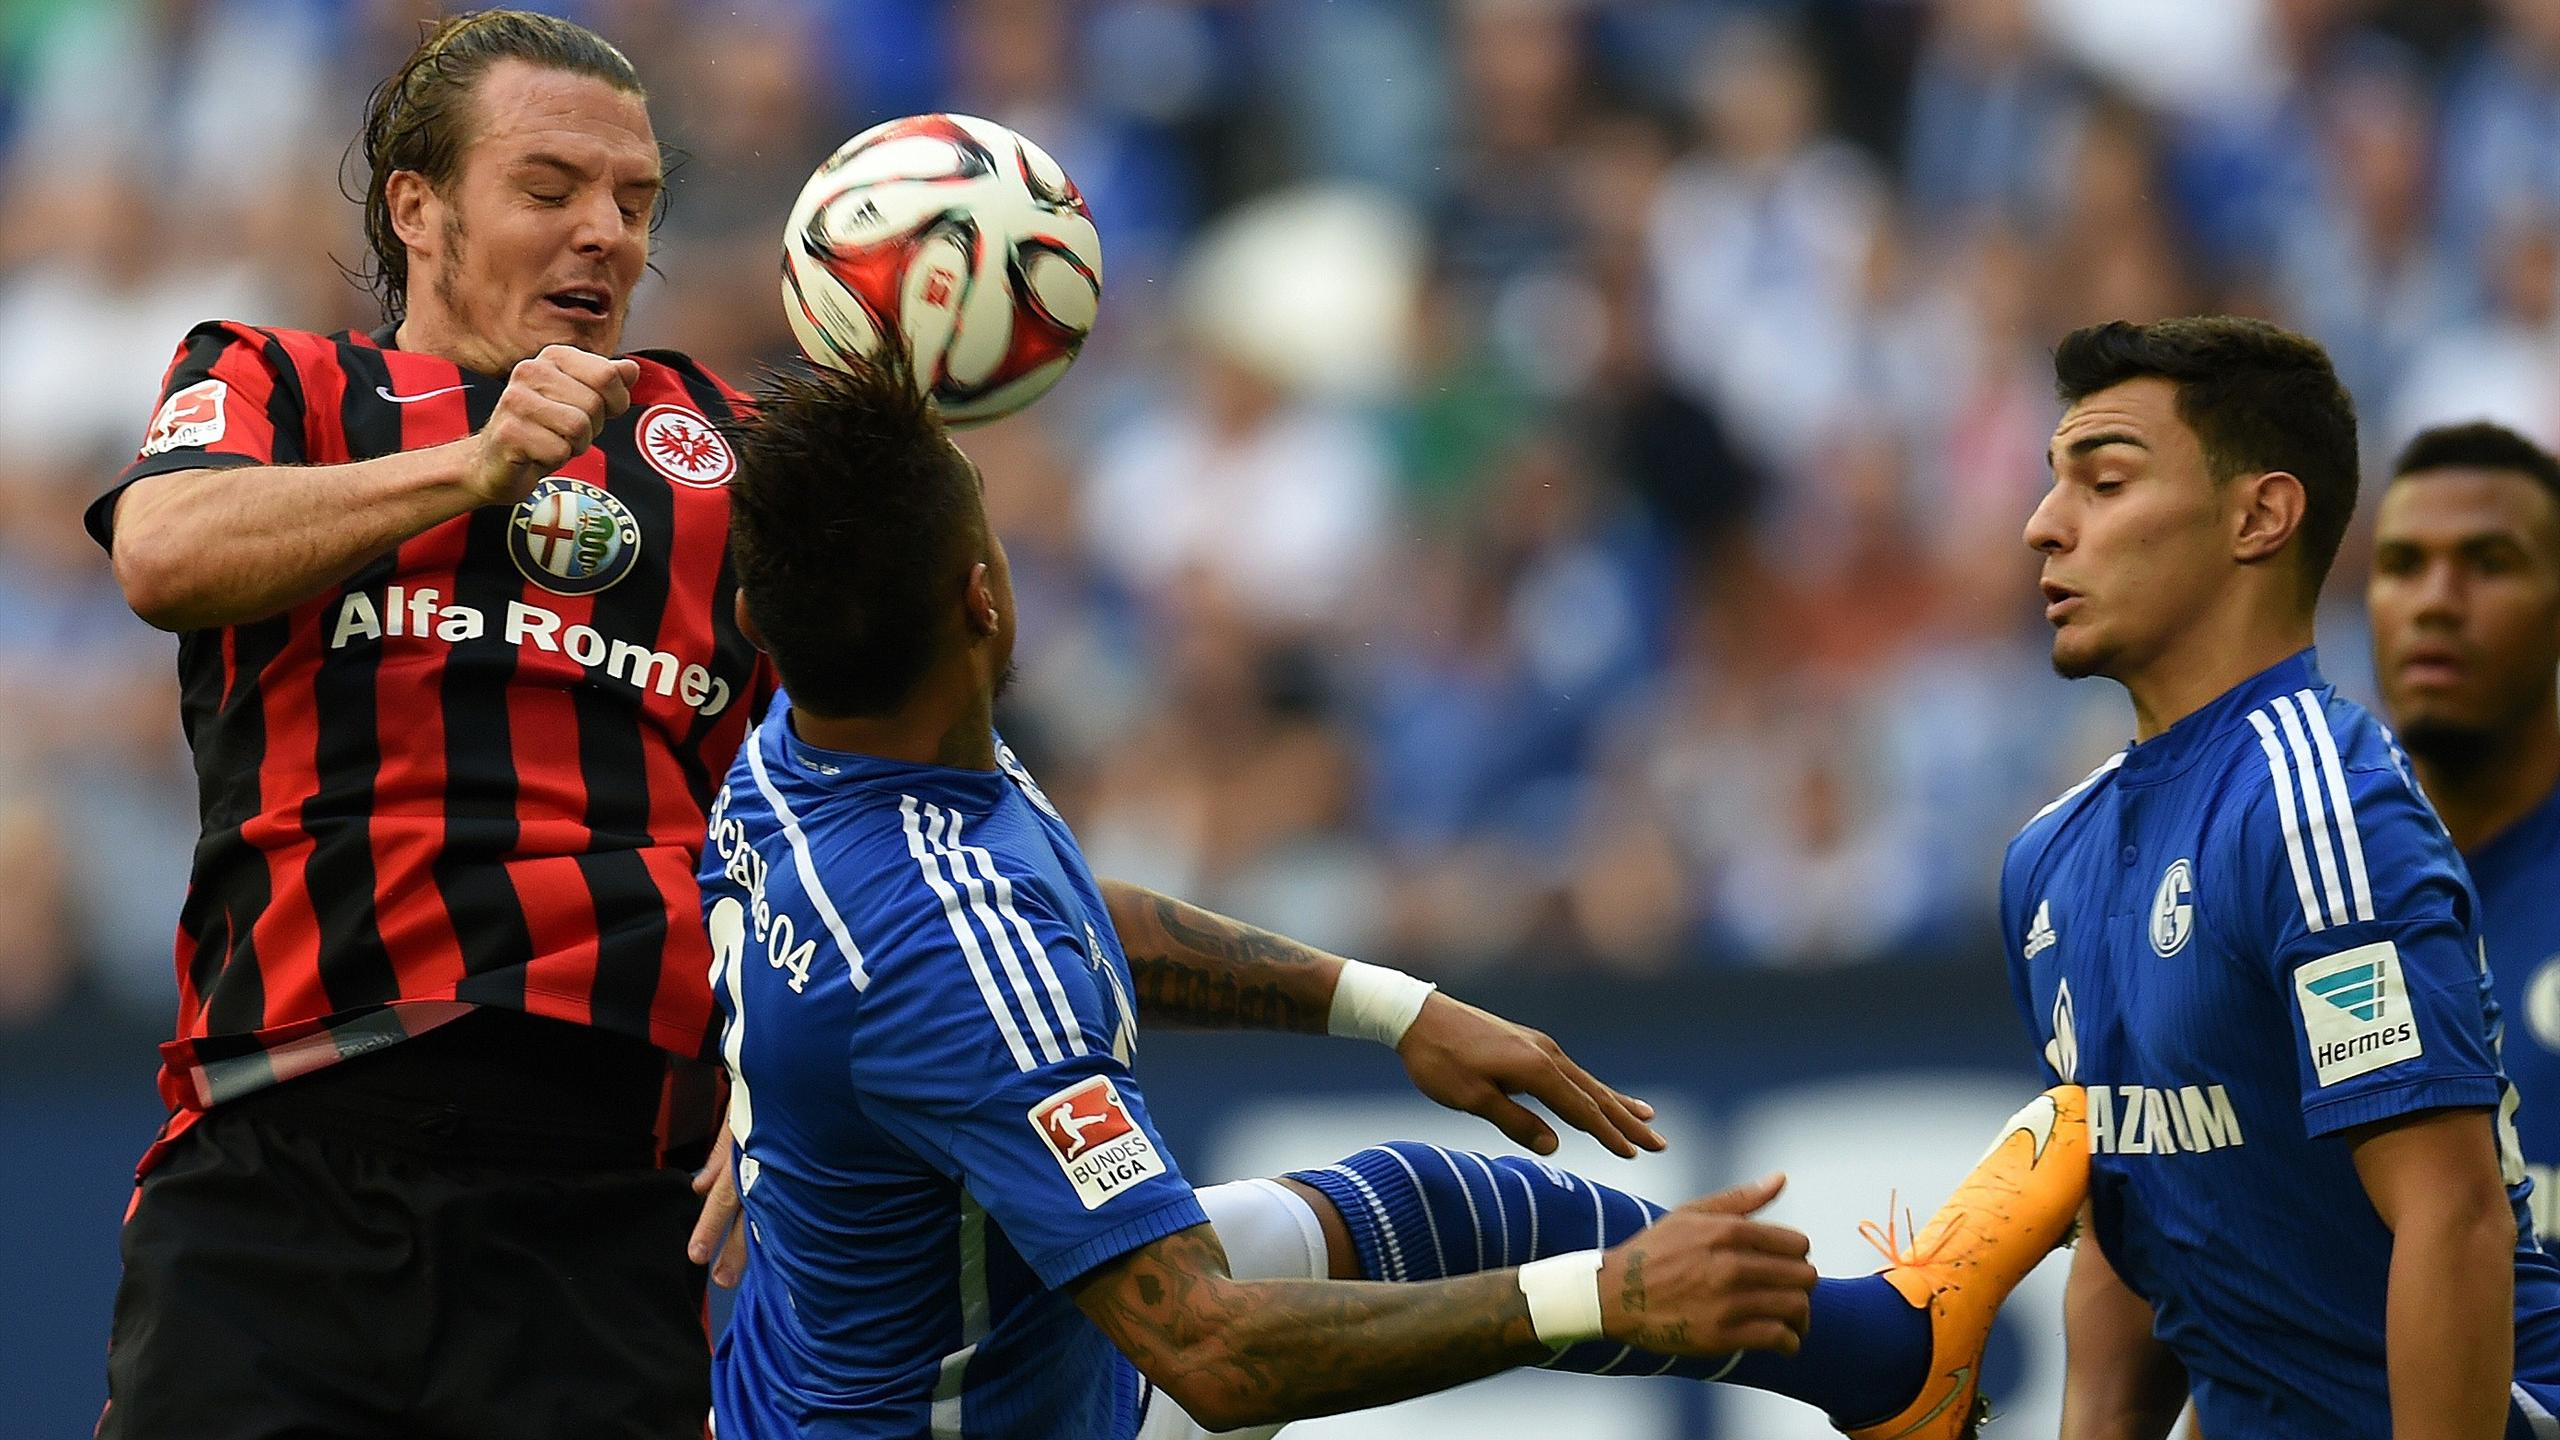 Video: Schalke 04 vs Eintracht Frankfurt